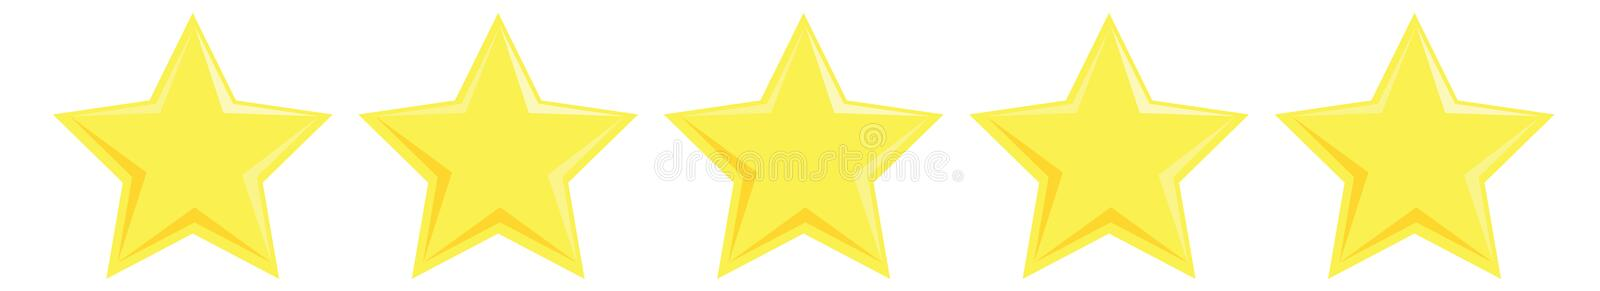 Five yellow stars customer product rating review. Vector flat illustration isolated on the white background royalty free illustration